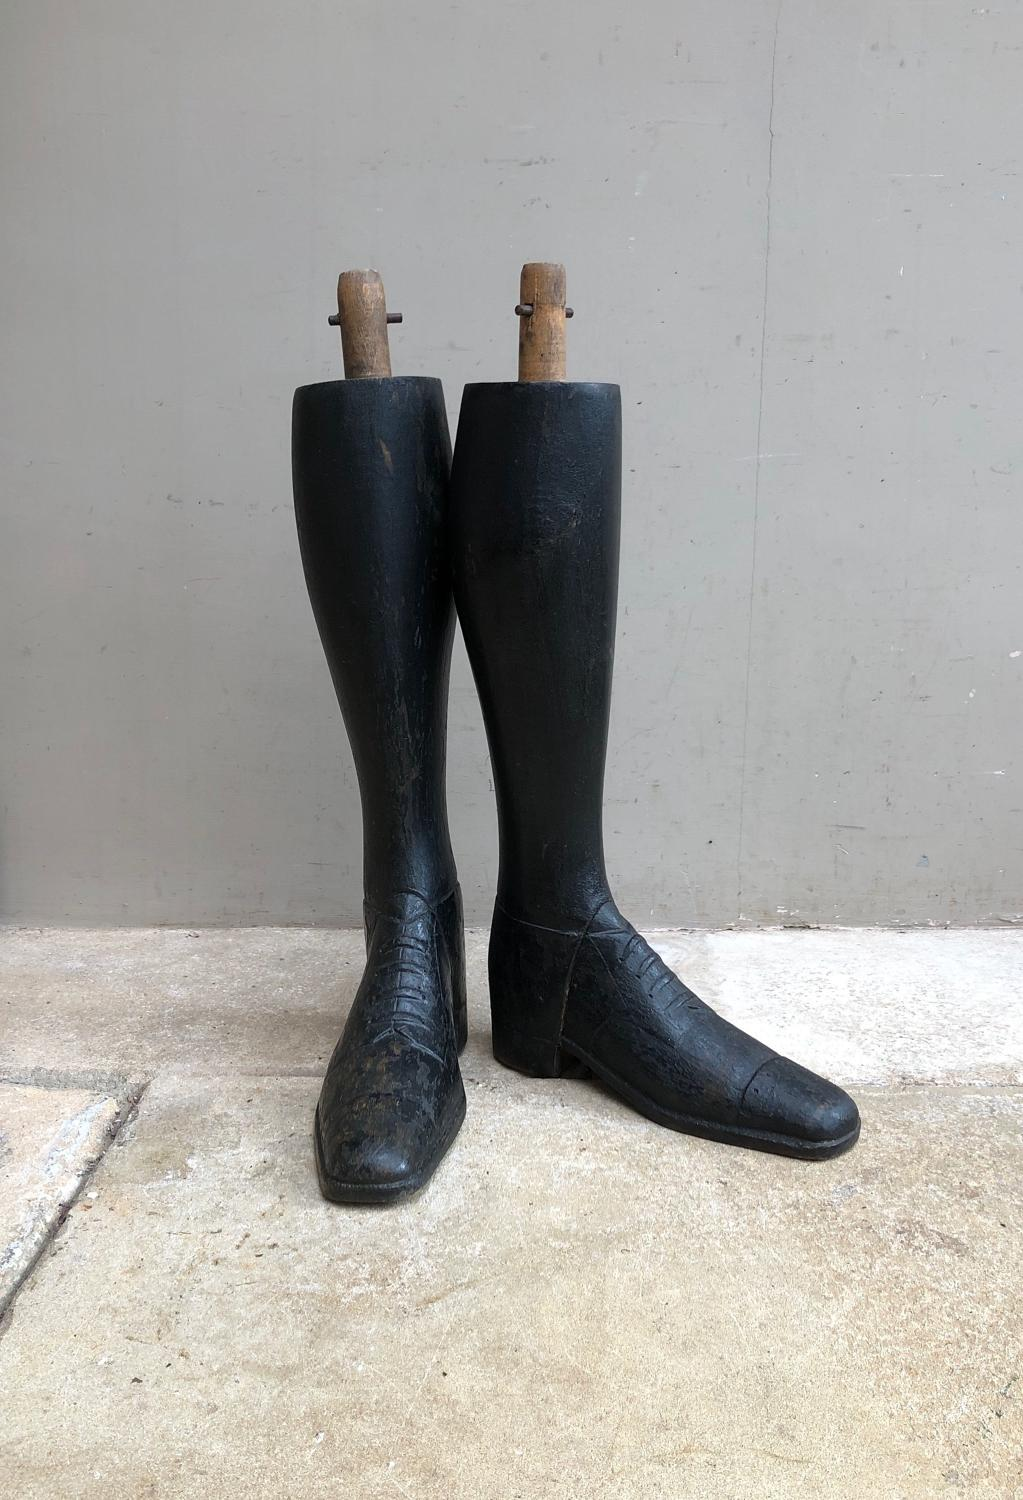 Rare Victorian Hand Carved All Wooden Mannequin Legs-Boots